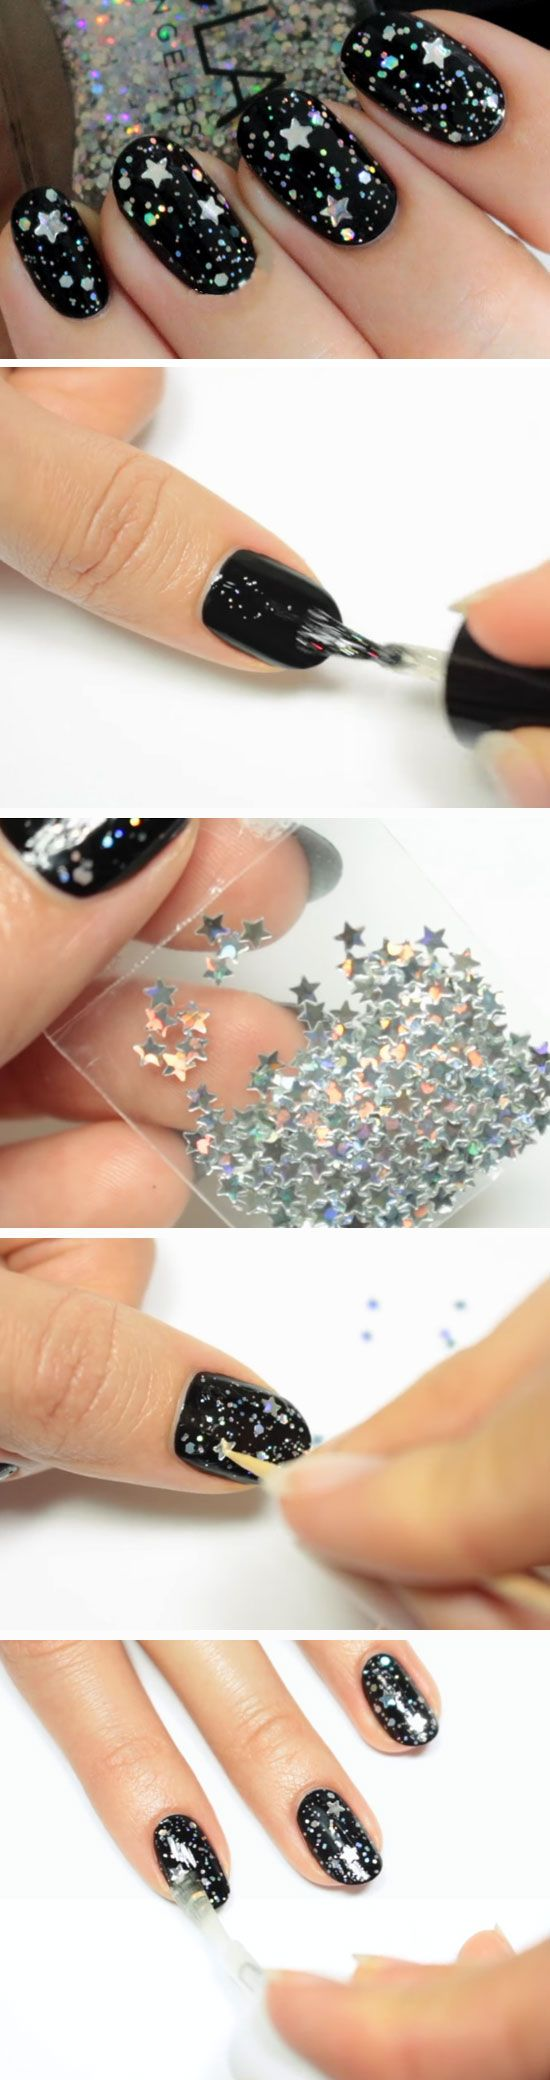 Starry Night | Easy DIY Prom Nails Tutorials Step by Step | DIY Homecoming Nails for a Black Dress